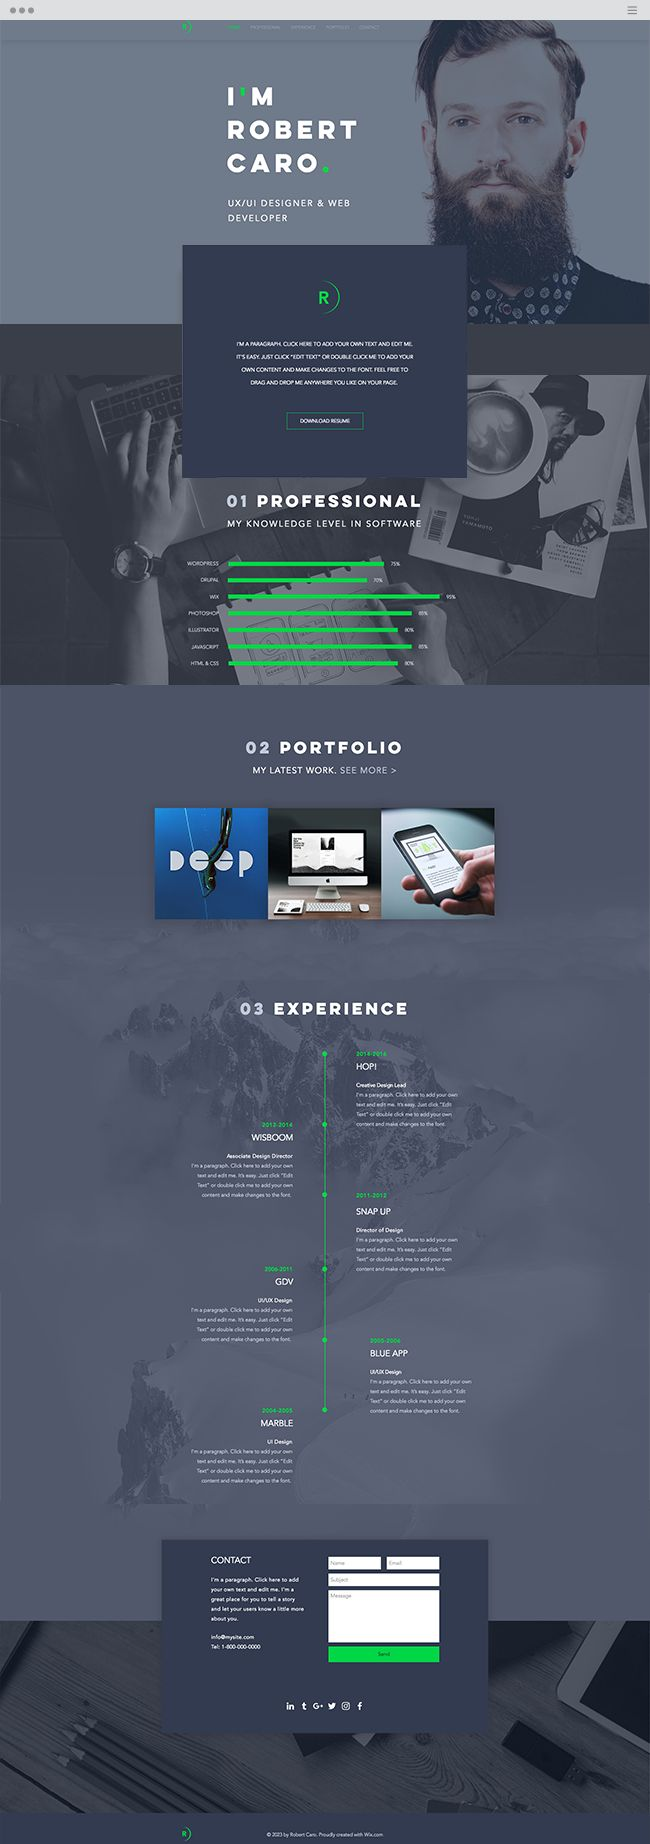 589 best images about wix website templates on pinterest